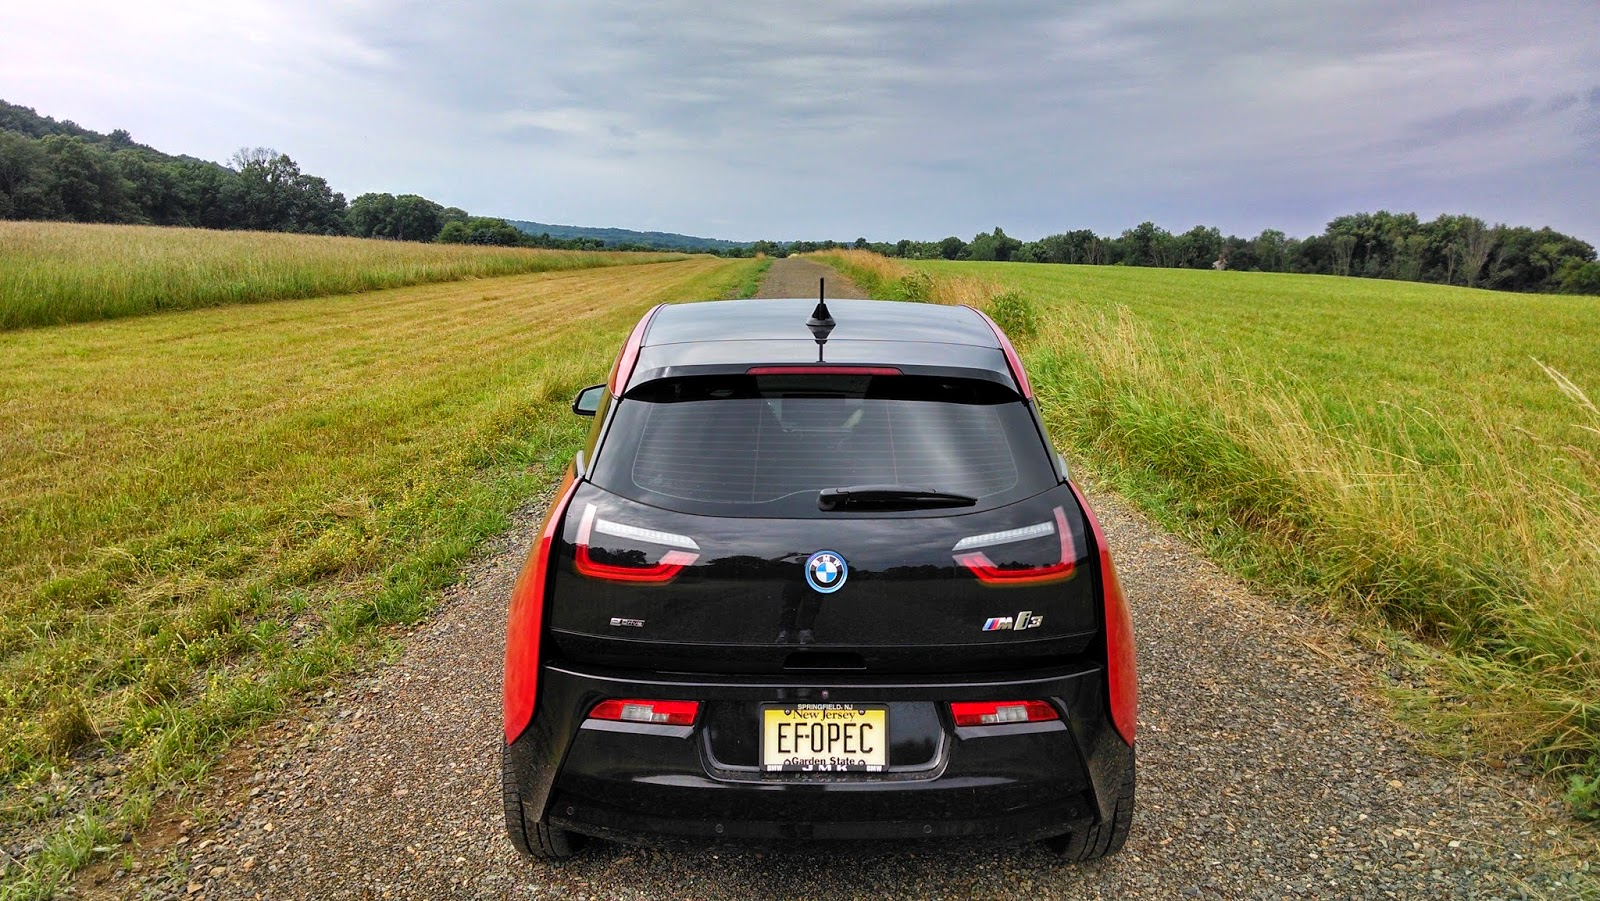 The Electric Bmw I3 July 2014